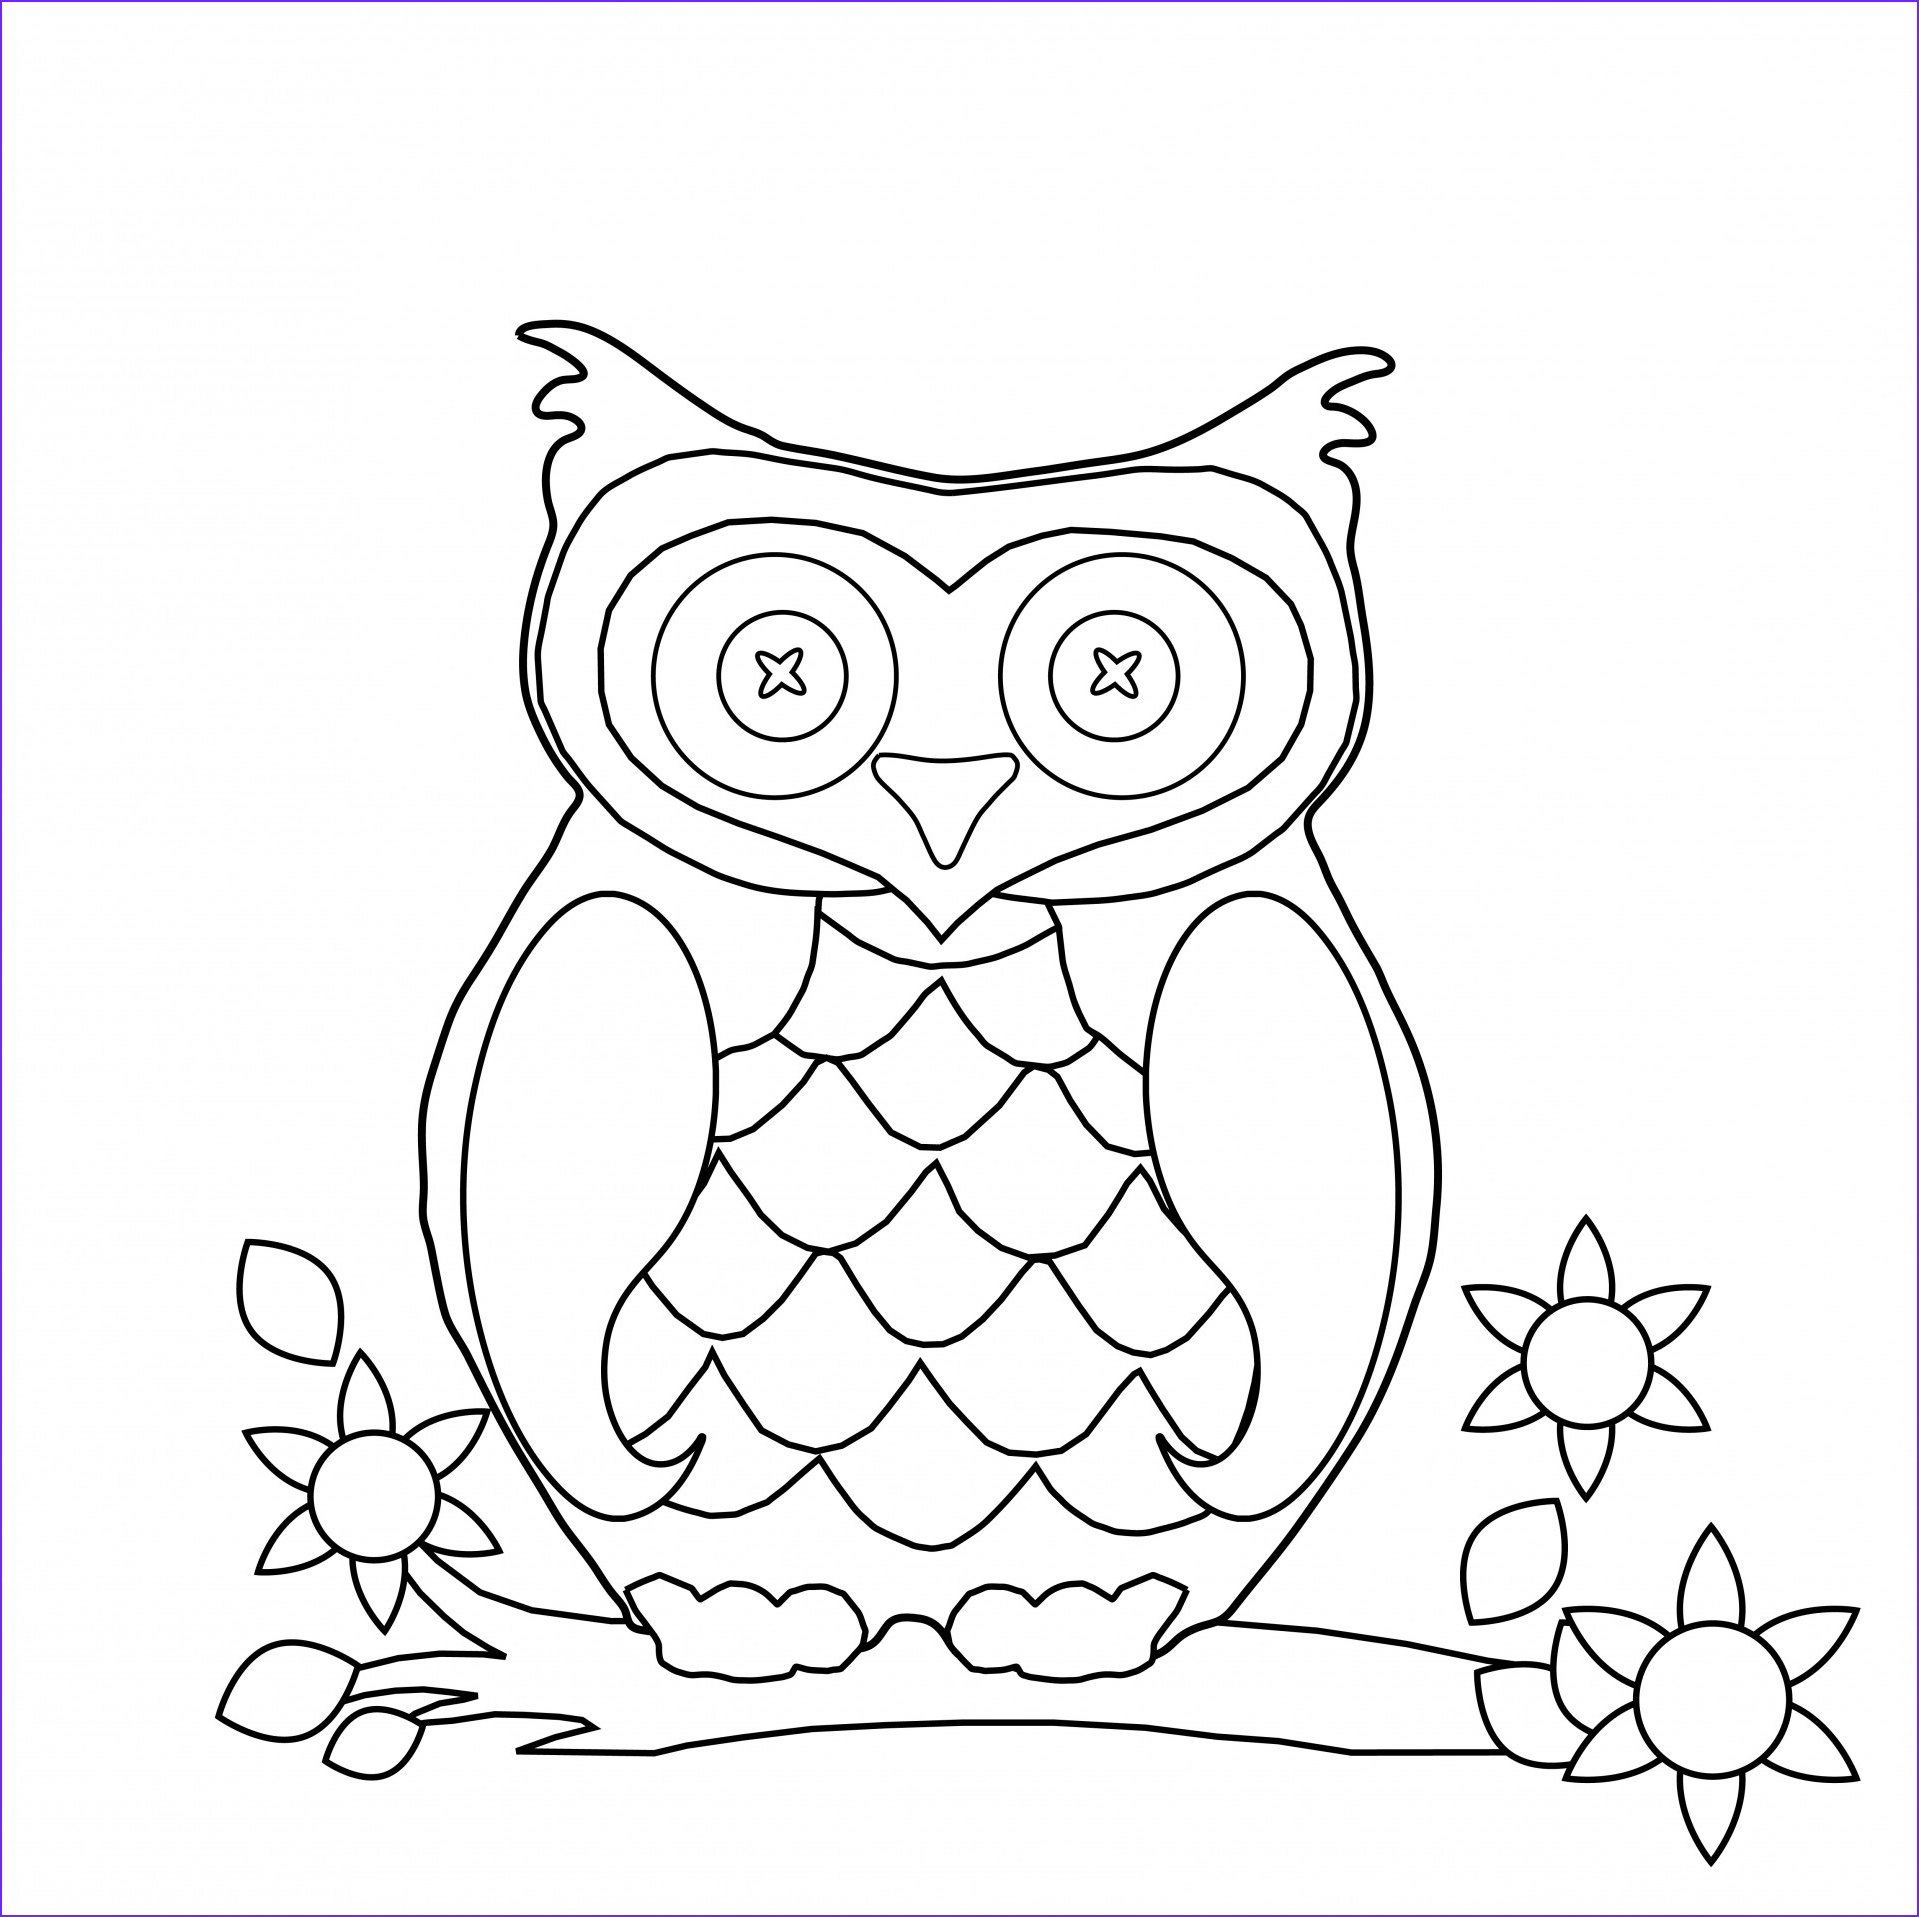 Free Printable Coloring Sheets for Adults New Photos Free Printable Abstract Coloring Pages for Adults